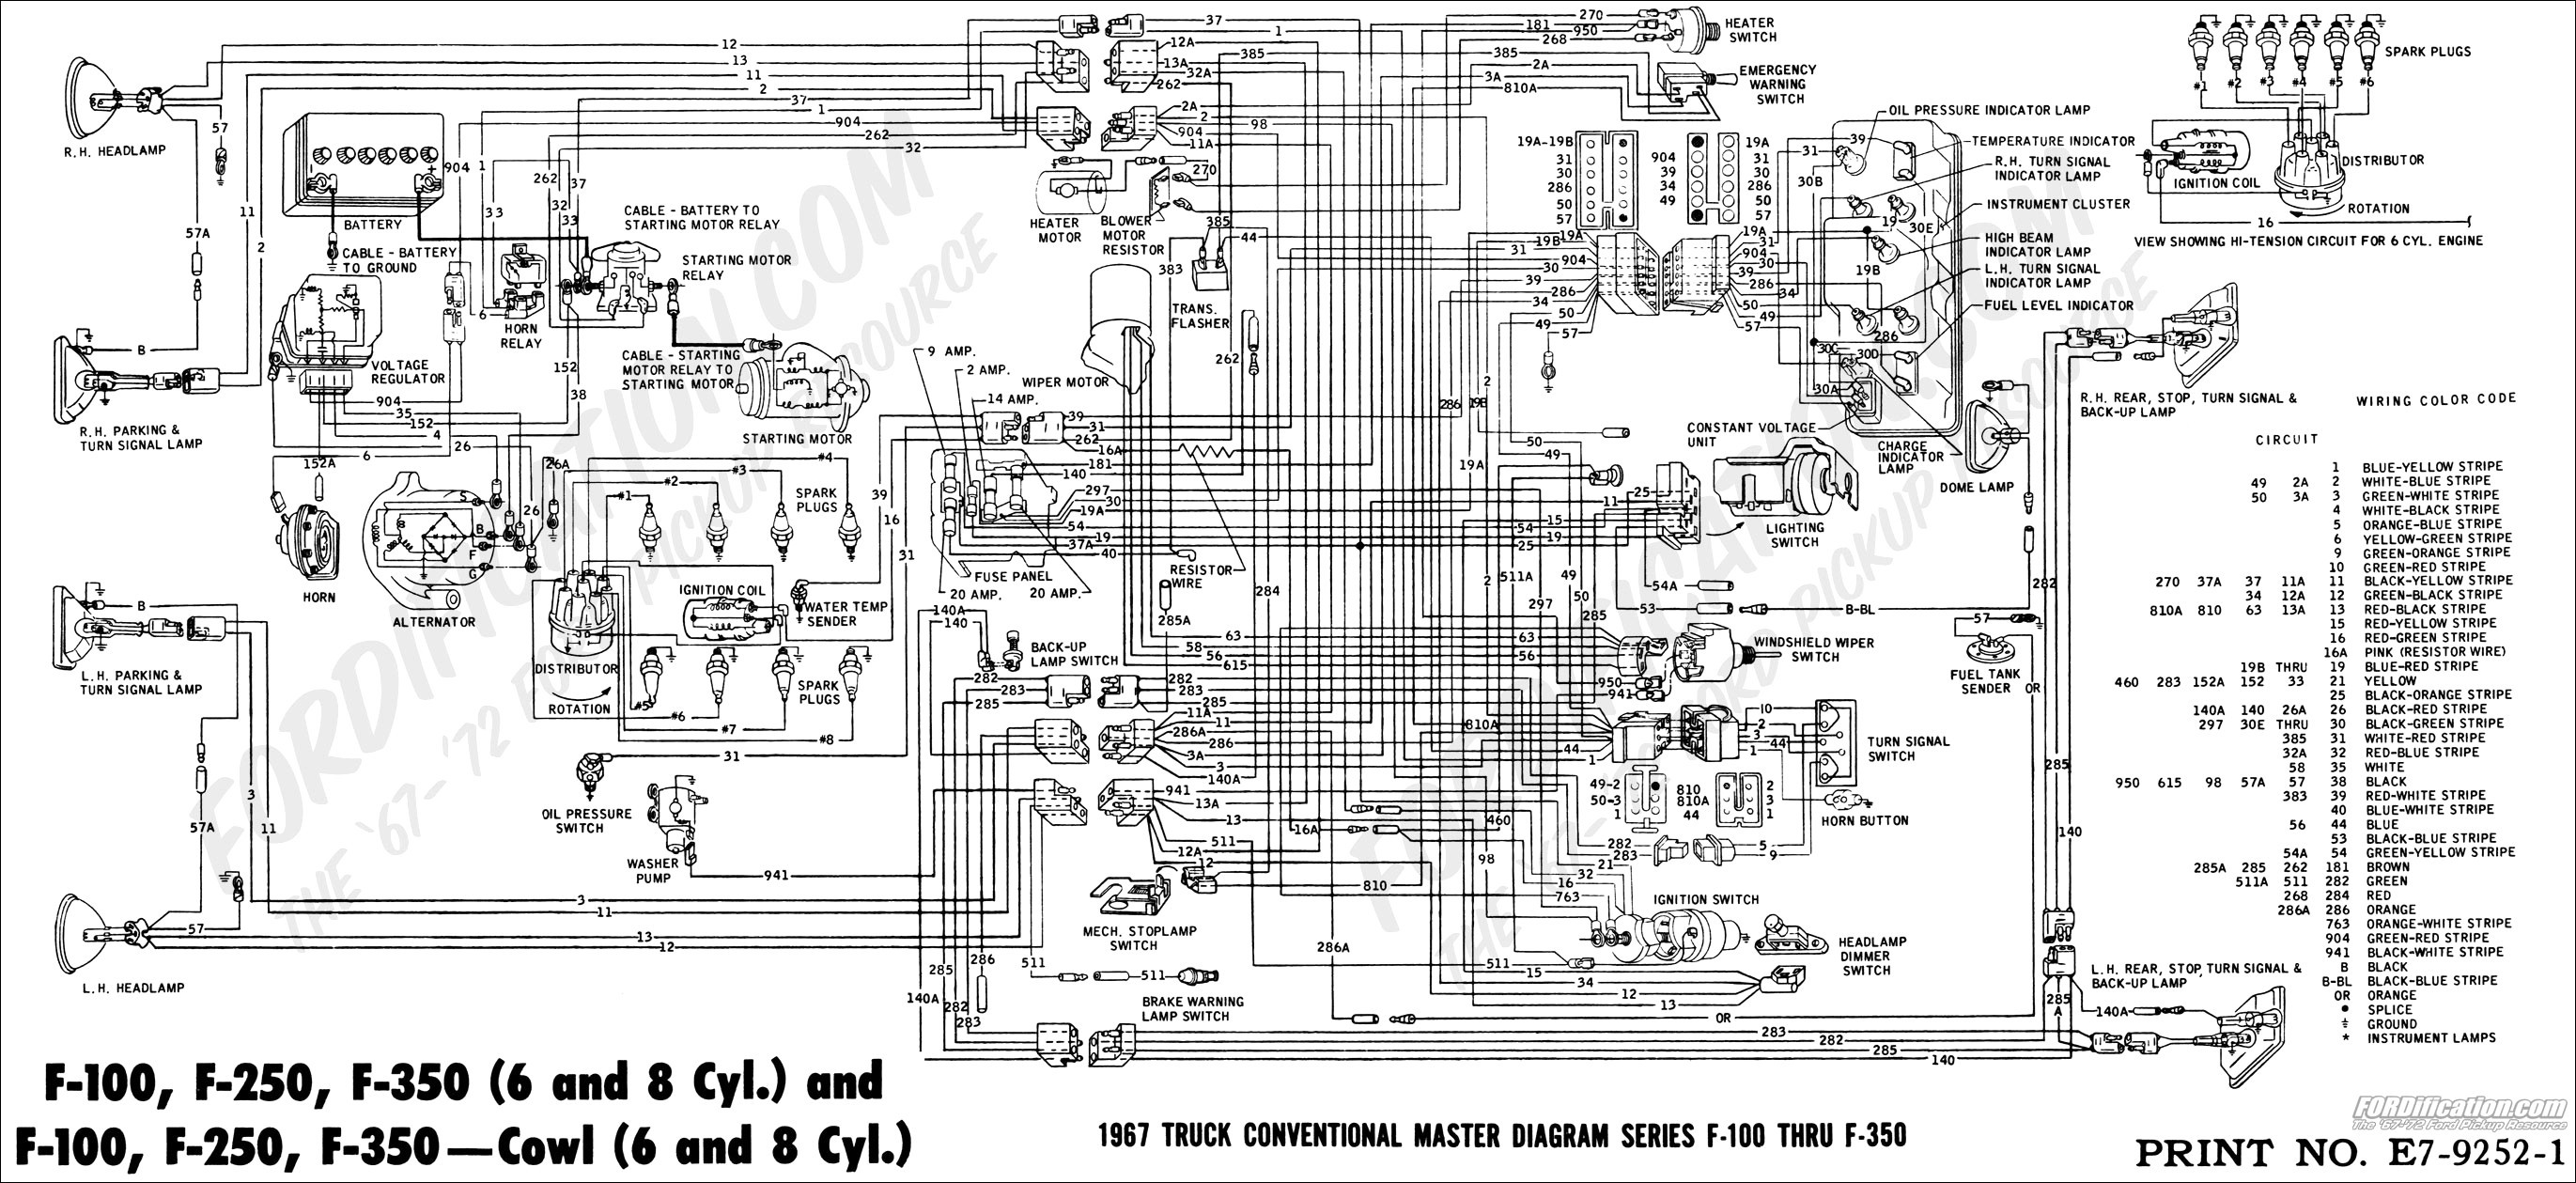 1983 f150 wire diagram wiring diagram schematics  1983 f150 wiring diagram wiring diagram data schema 1983 f150 wire diagram